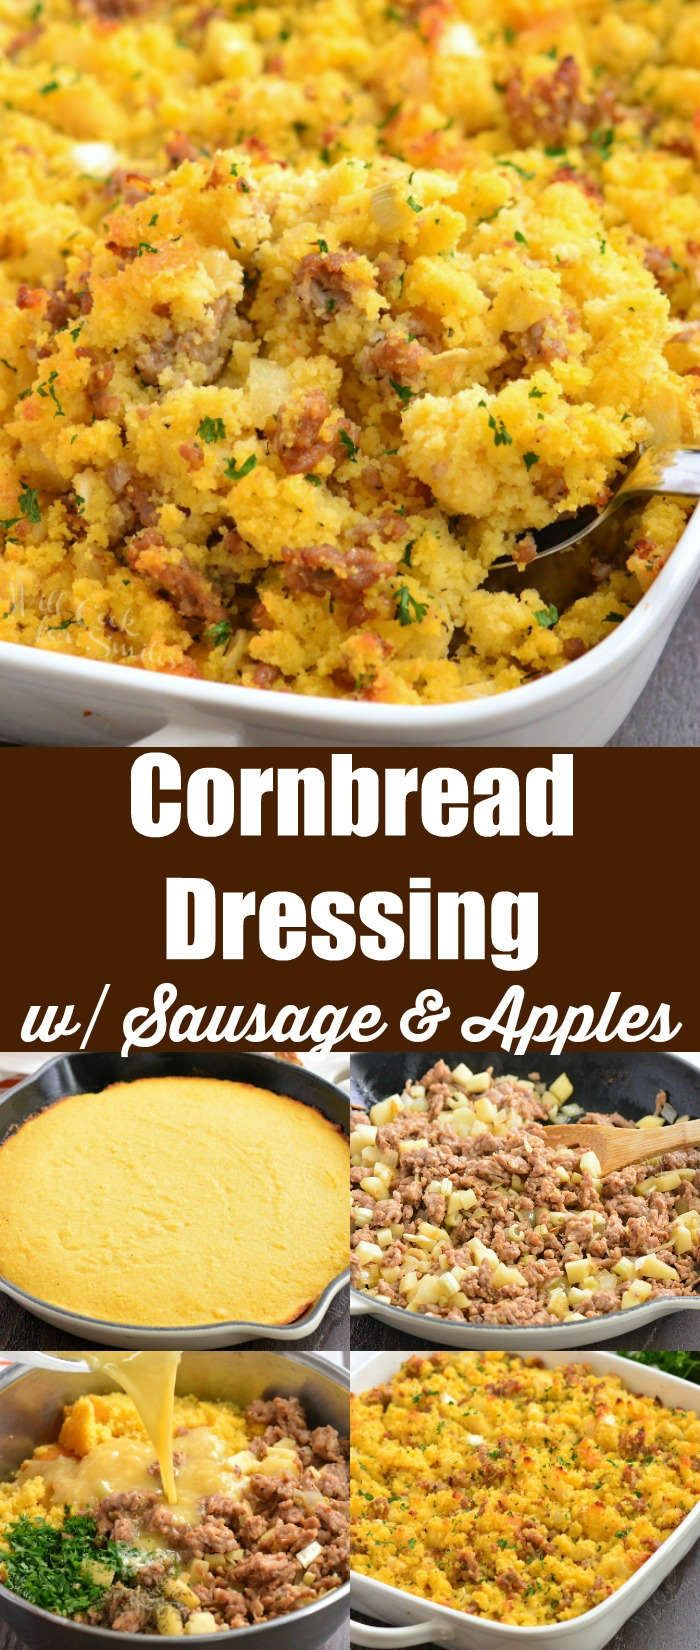 Cornbread Dressing with Sausage and Apples -   18 stuffing recipes for thanksgiving with sausage cornbread dressing ideas